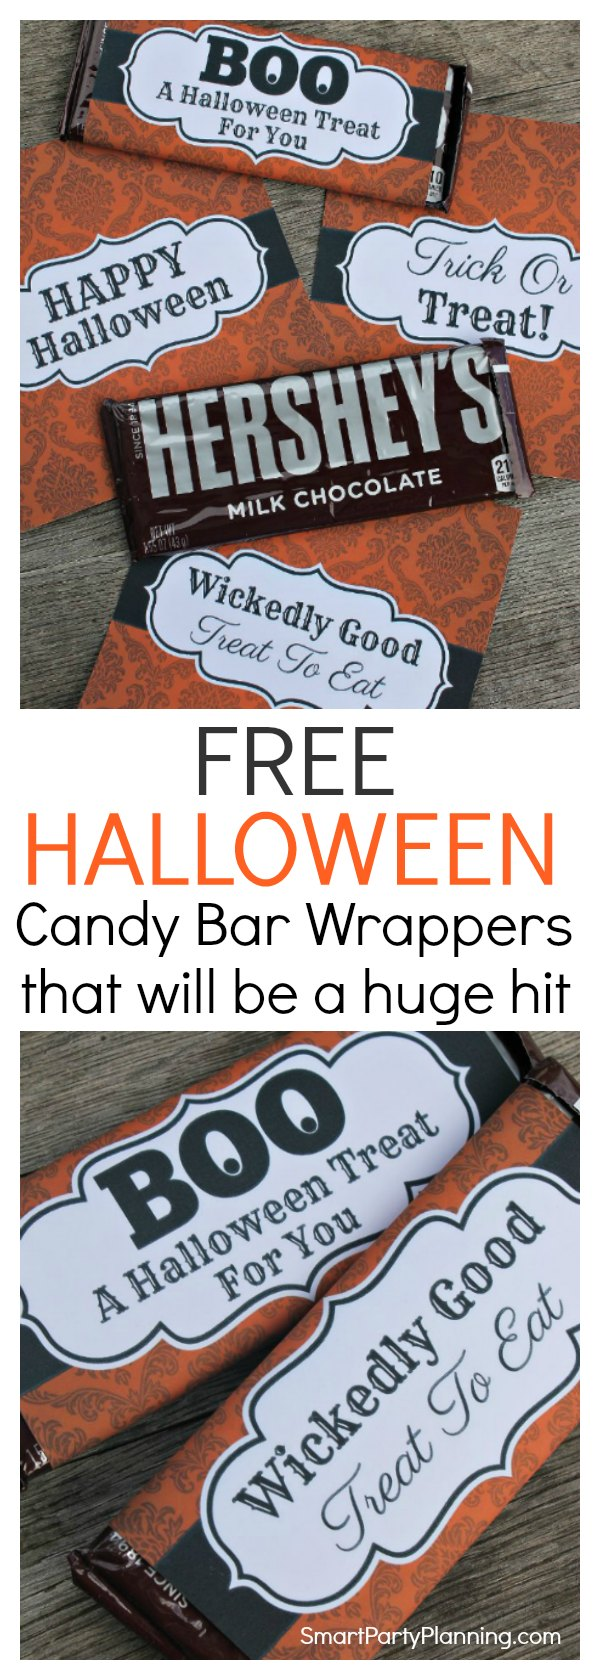 Grab your Halloween candy bar wrappers that are to be a sure hit with the young and old.  Use as party favors, trick or treaters treats, Halloween gifts or simple to enjoy yourself.  There are four fun designs that you can download instantly for free.  This is the perfect solution to fill up those Halloween treat bags!